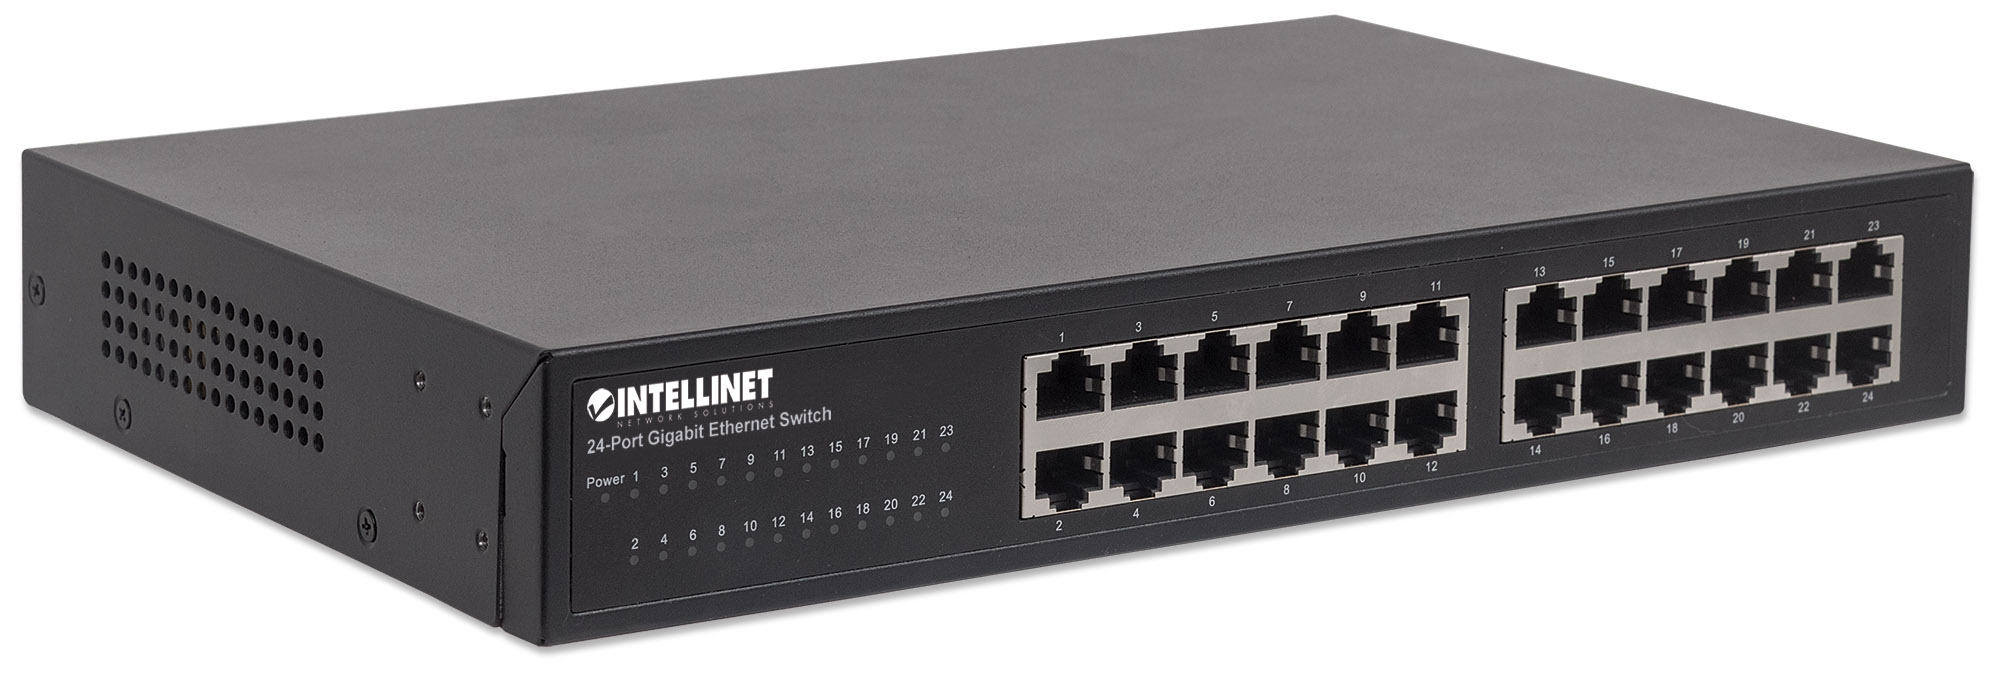 24-Port Gigabit Ethernet Switch